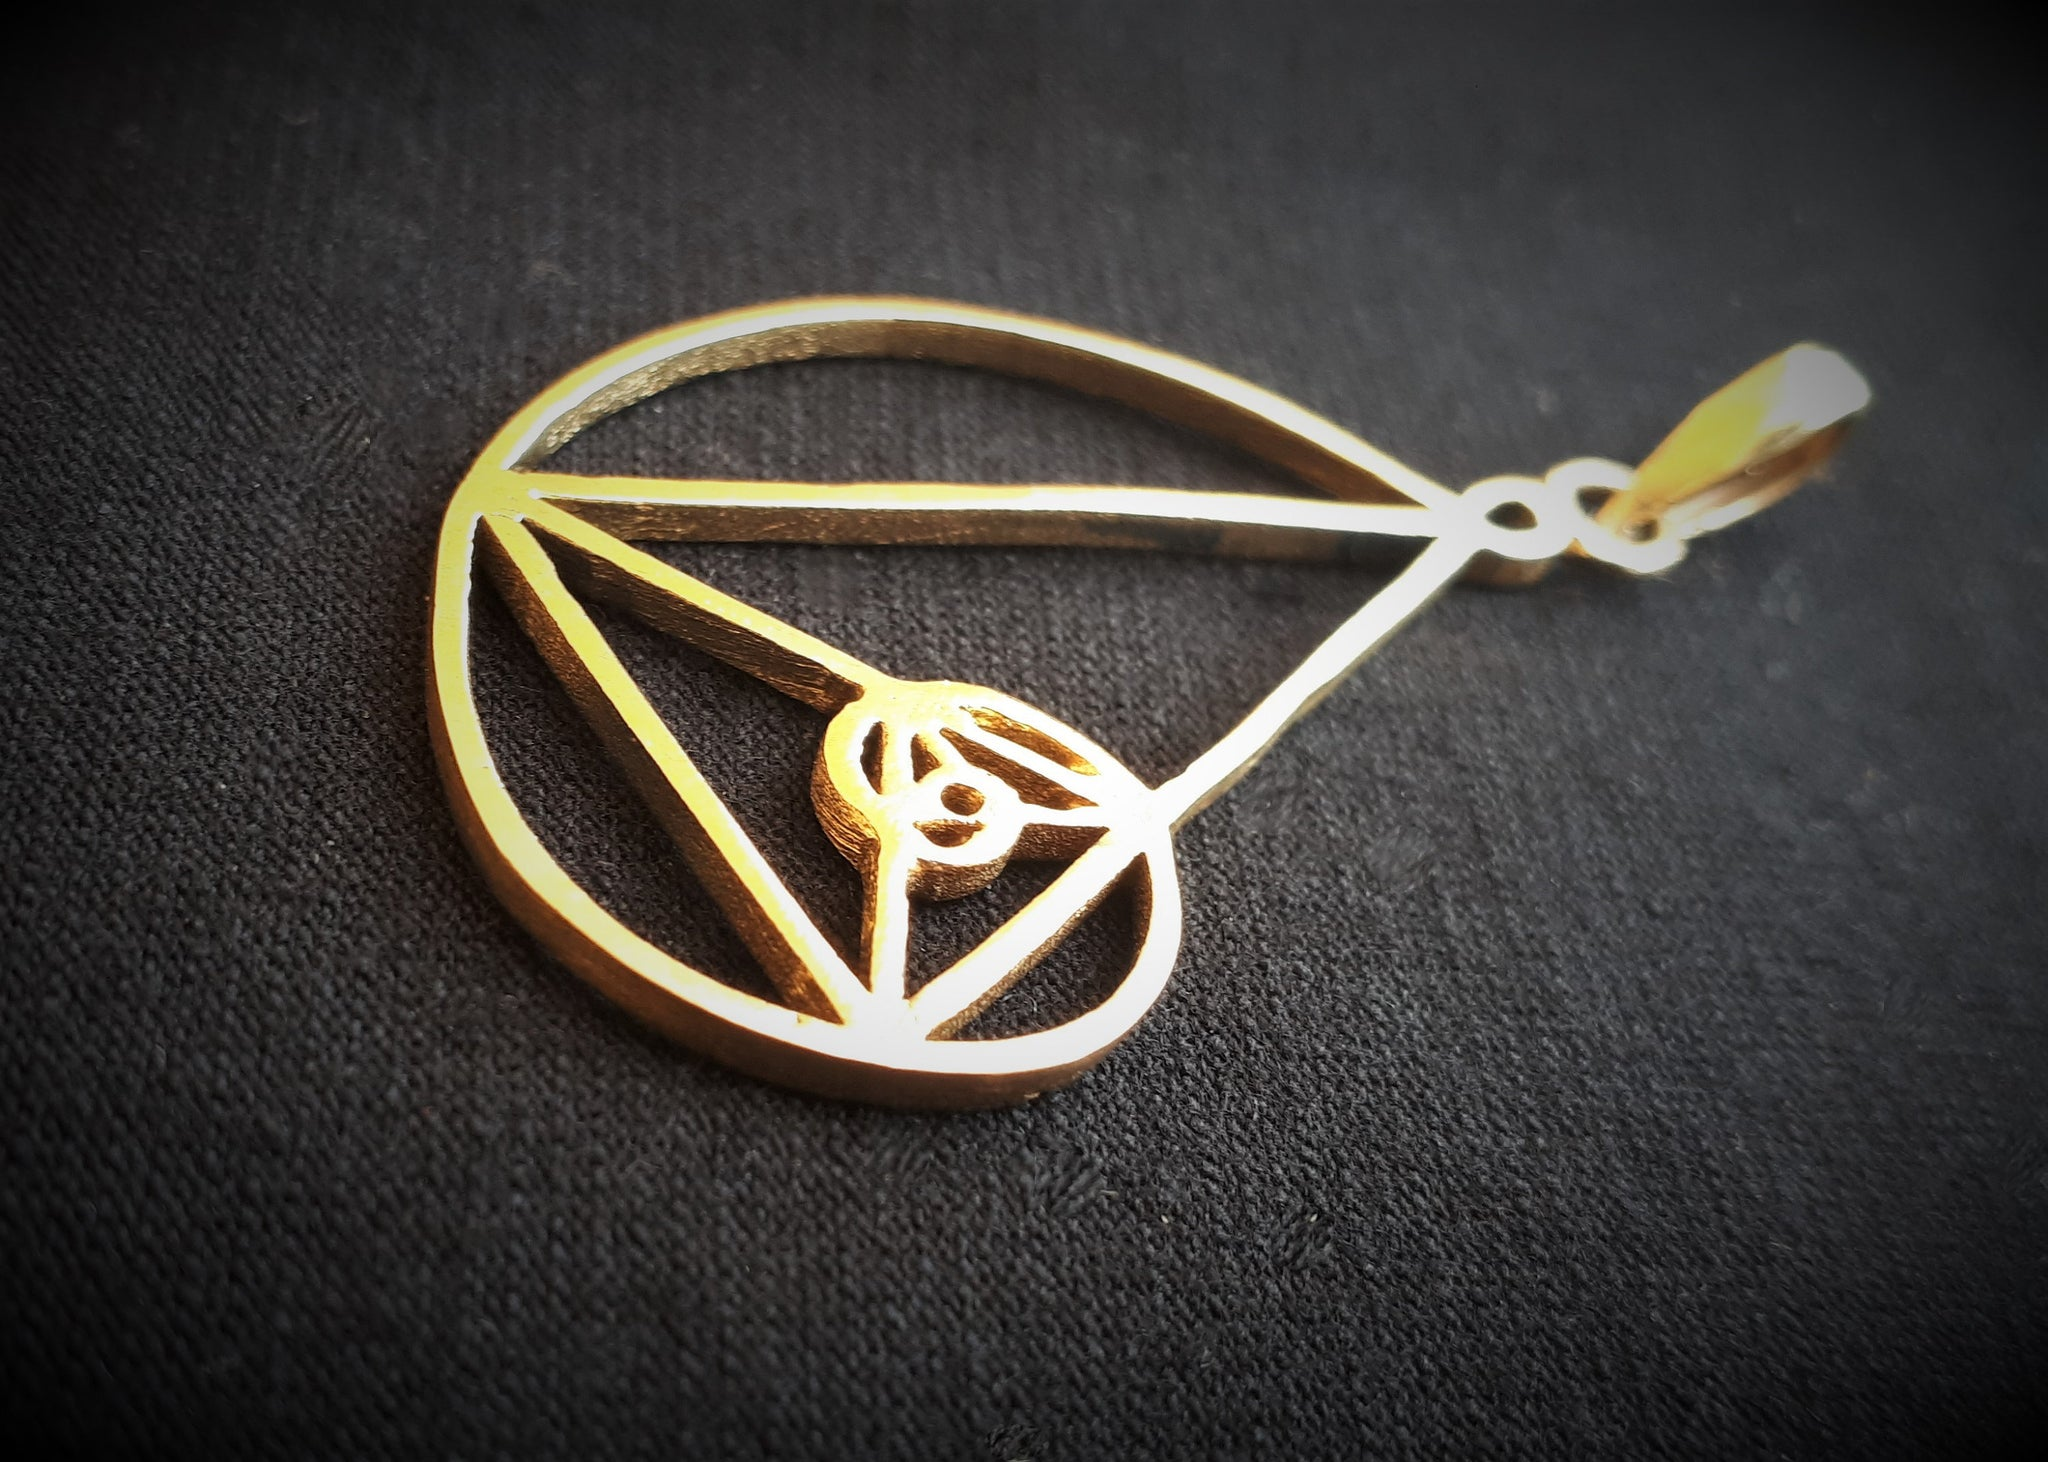 FIBONACCI Brass Pendant - Tribal Necklace, Golden Spiral Pendant, Psytrance Necklace, Psy Gypsy, Boho, Sacred Geometry Necklace, Hippie